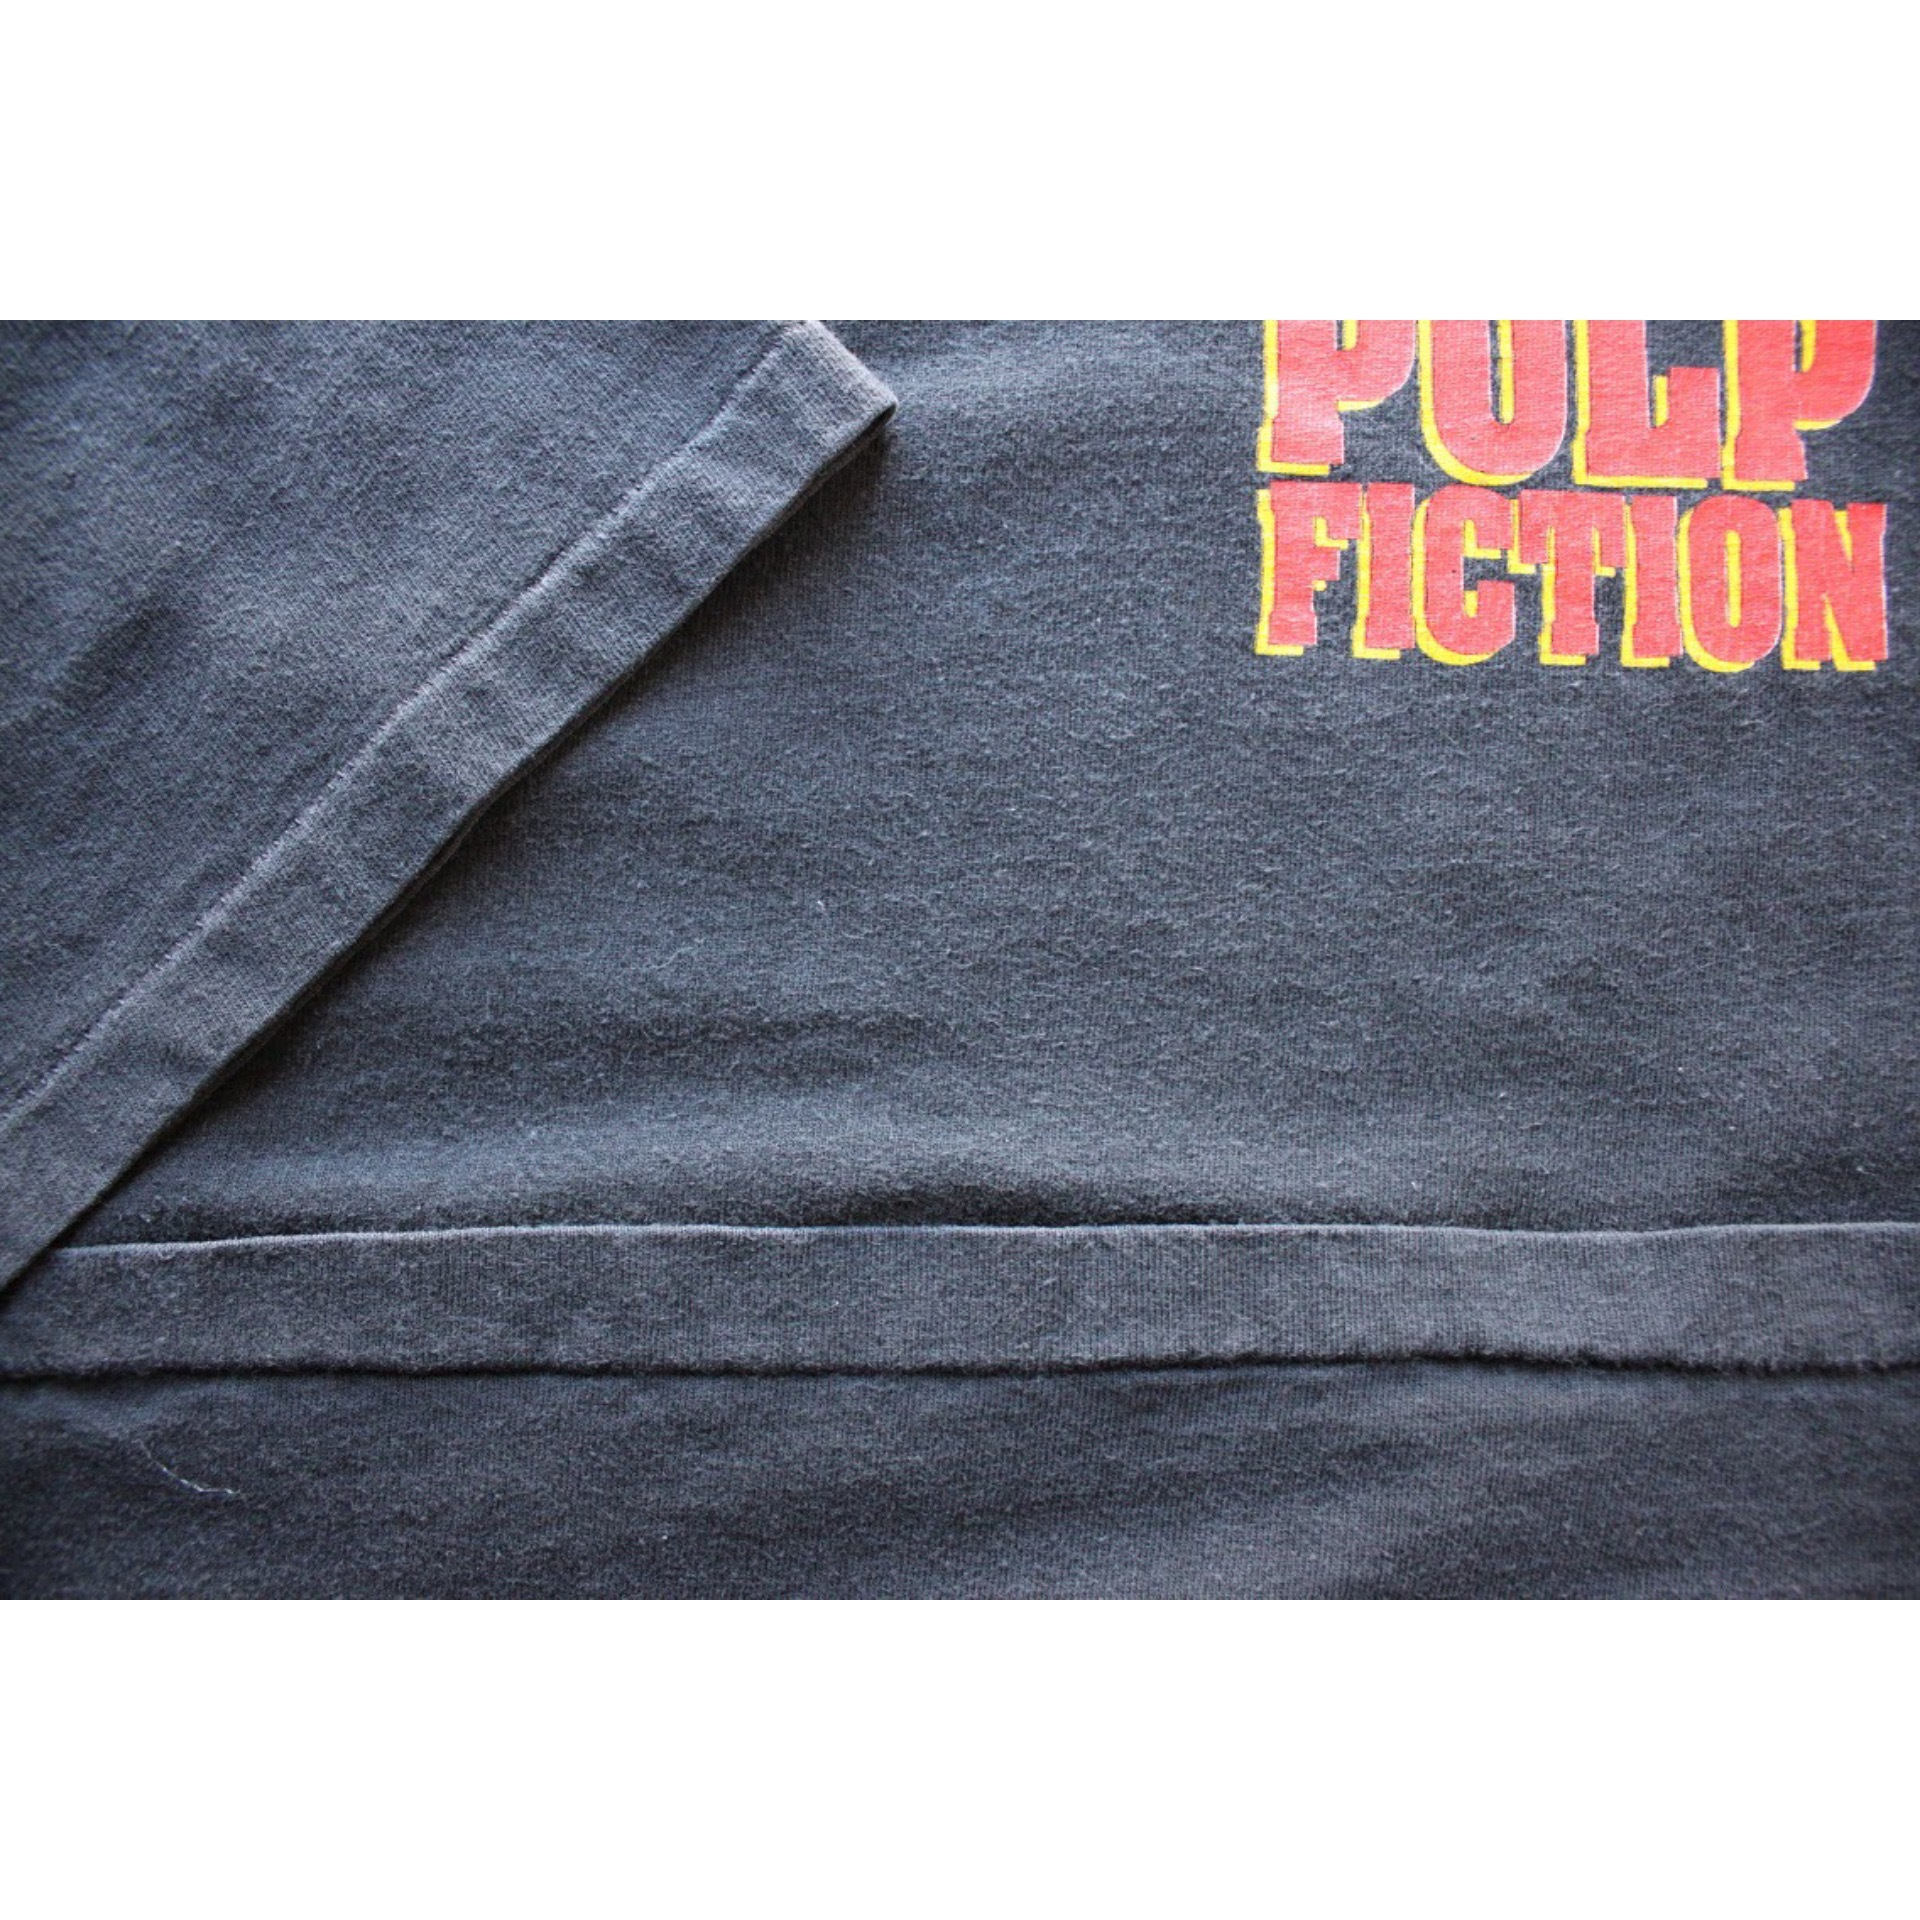 Vintage Pulp Fiction t shirt